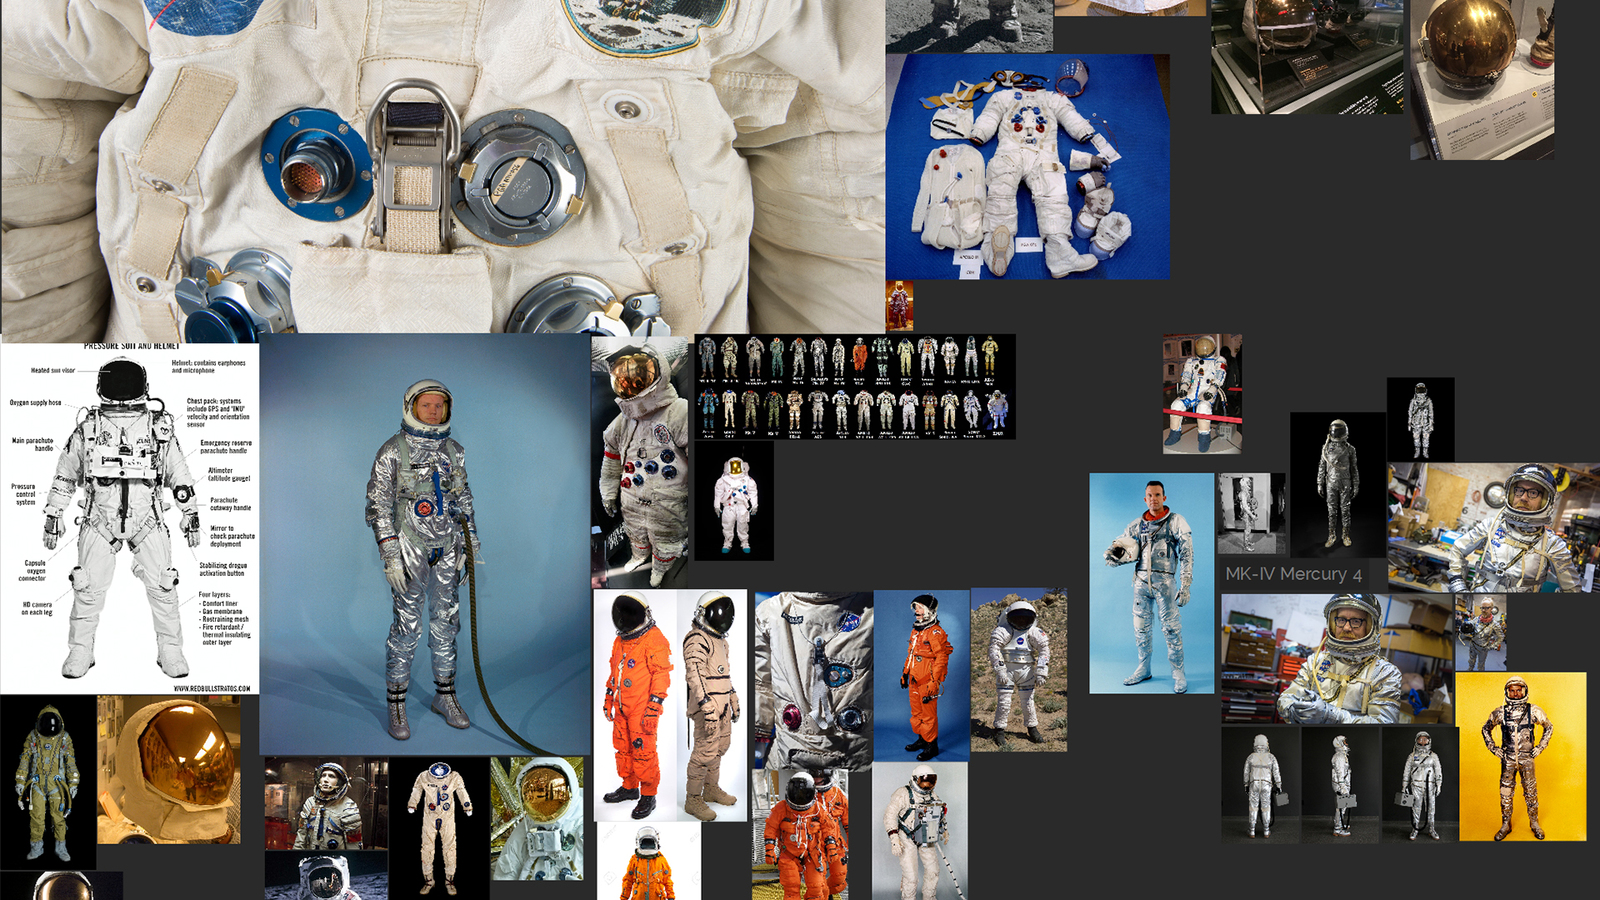 sample mood board consisting of astronaut reference images, used as inspiration for the making of Transmissions piece